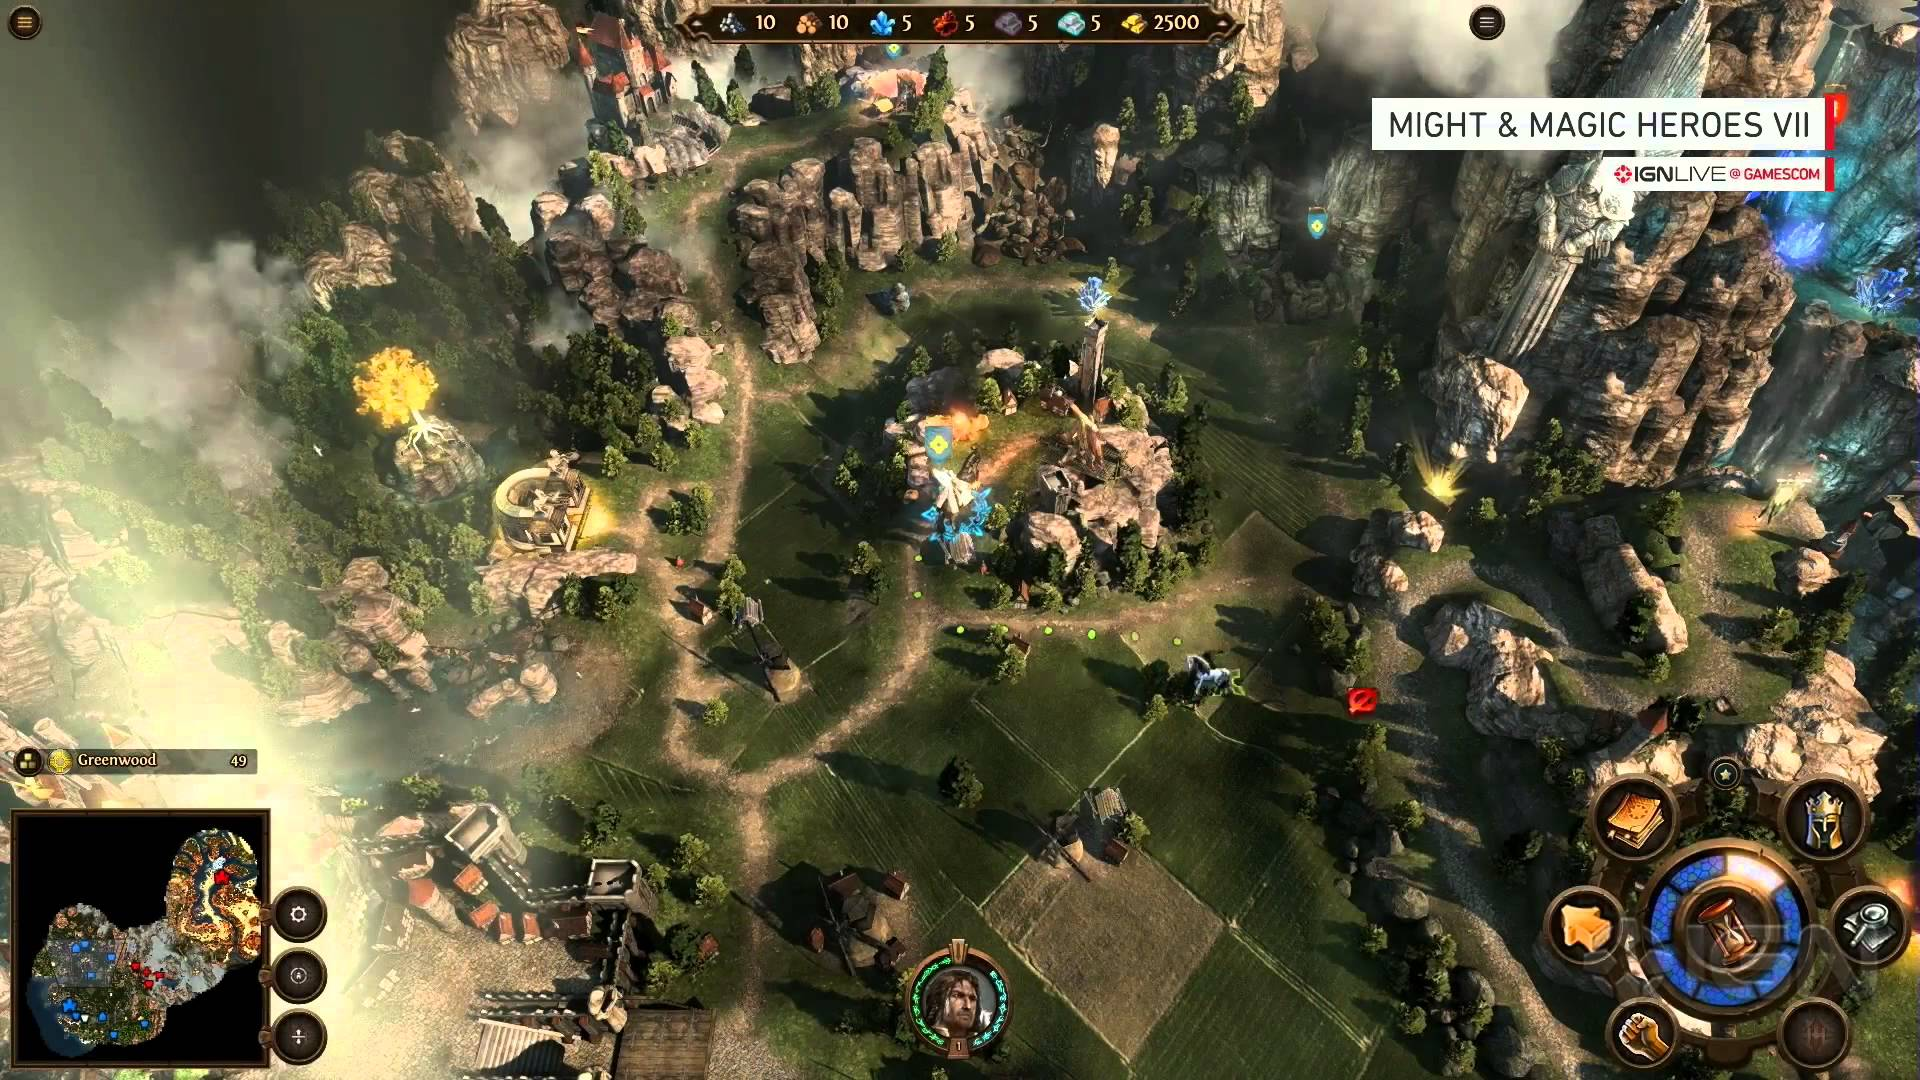 Heroes Of Might And Magic VII Backgrounds on Wallpapers Vista